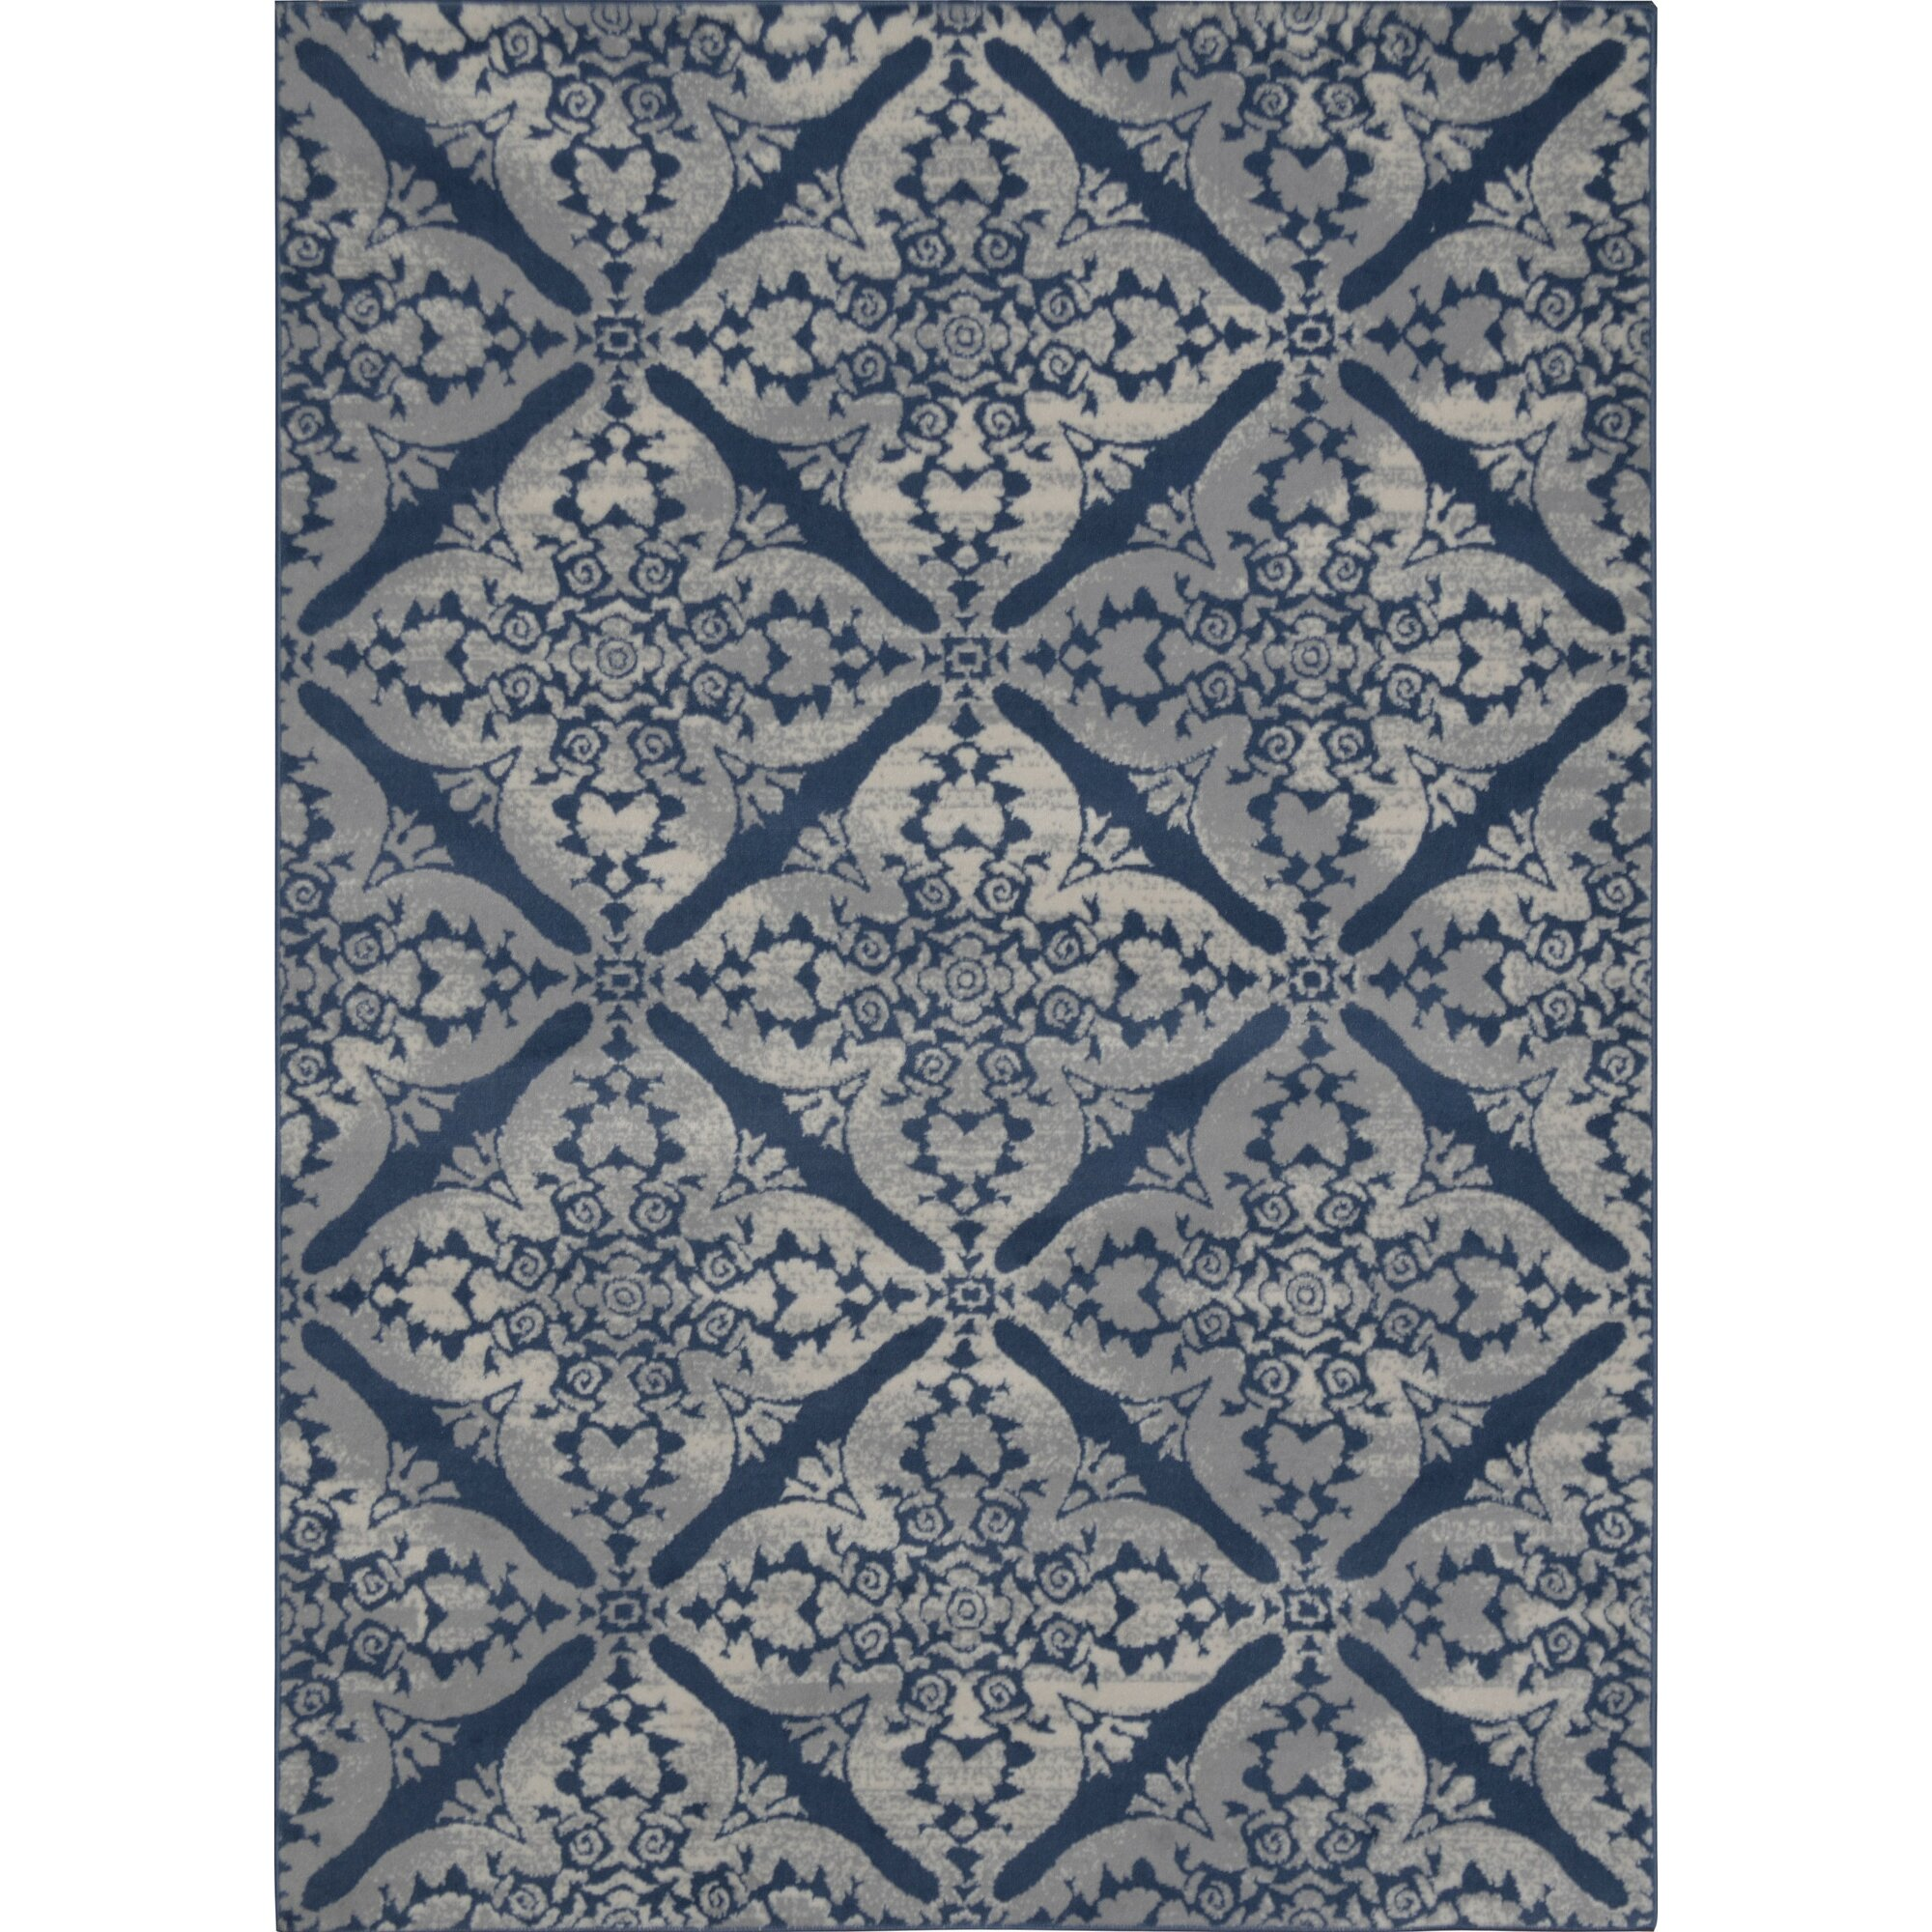 Andover mills blue gray area rug reviews wayfair for Where can i buy area rugs